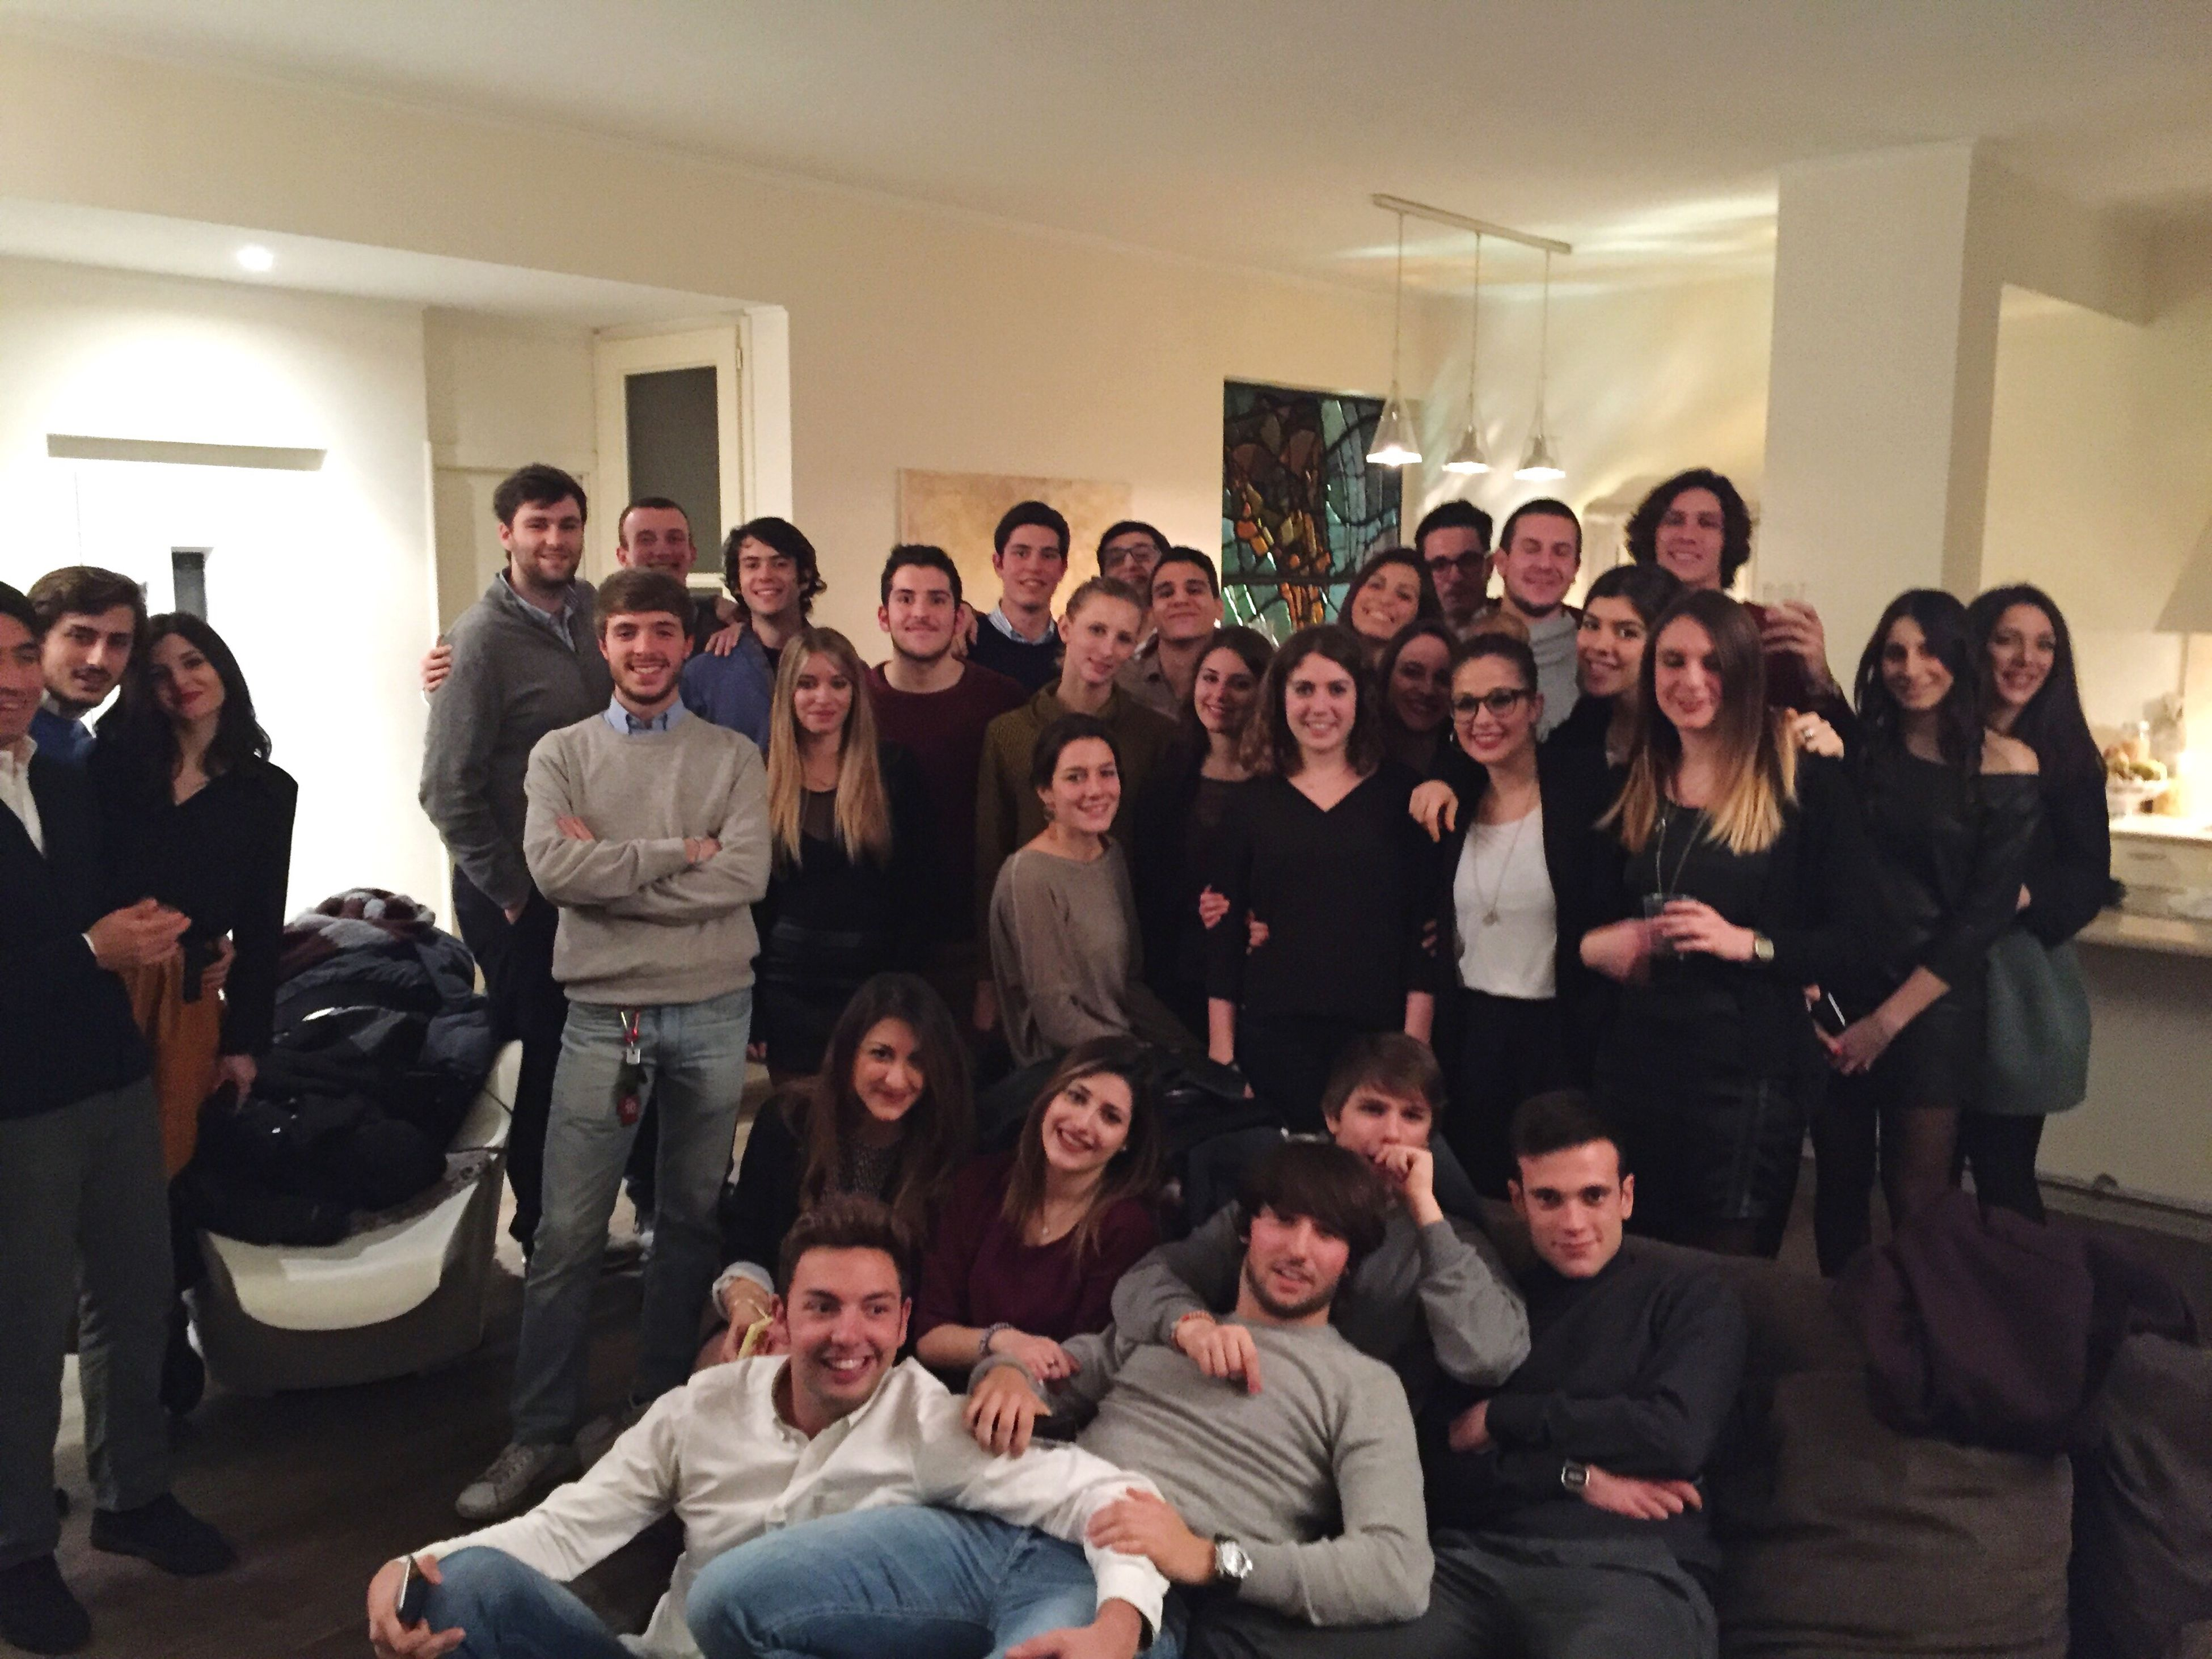 lifestyles, togetherness, leisure activity, large group of people, indoors, men, fun, happiness, friendship, enjoyment, person, crowd, standing, casual clothing, celebration, bonding, portrait, young men